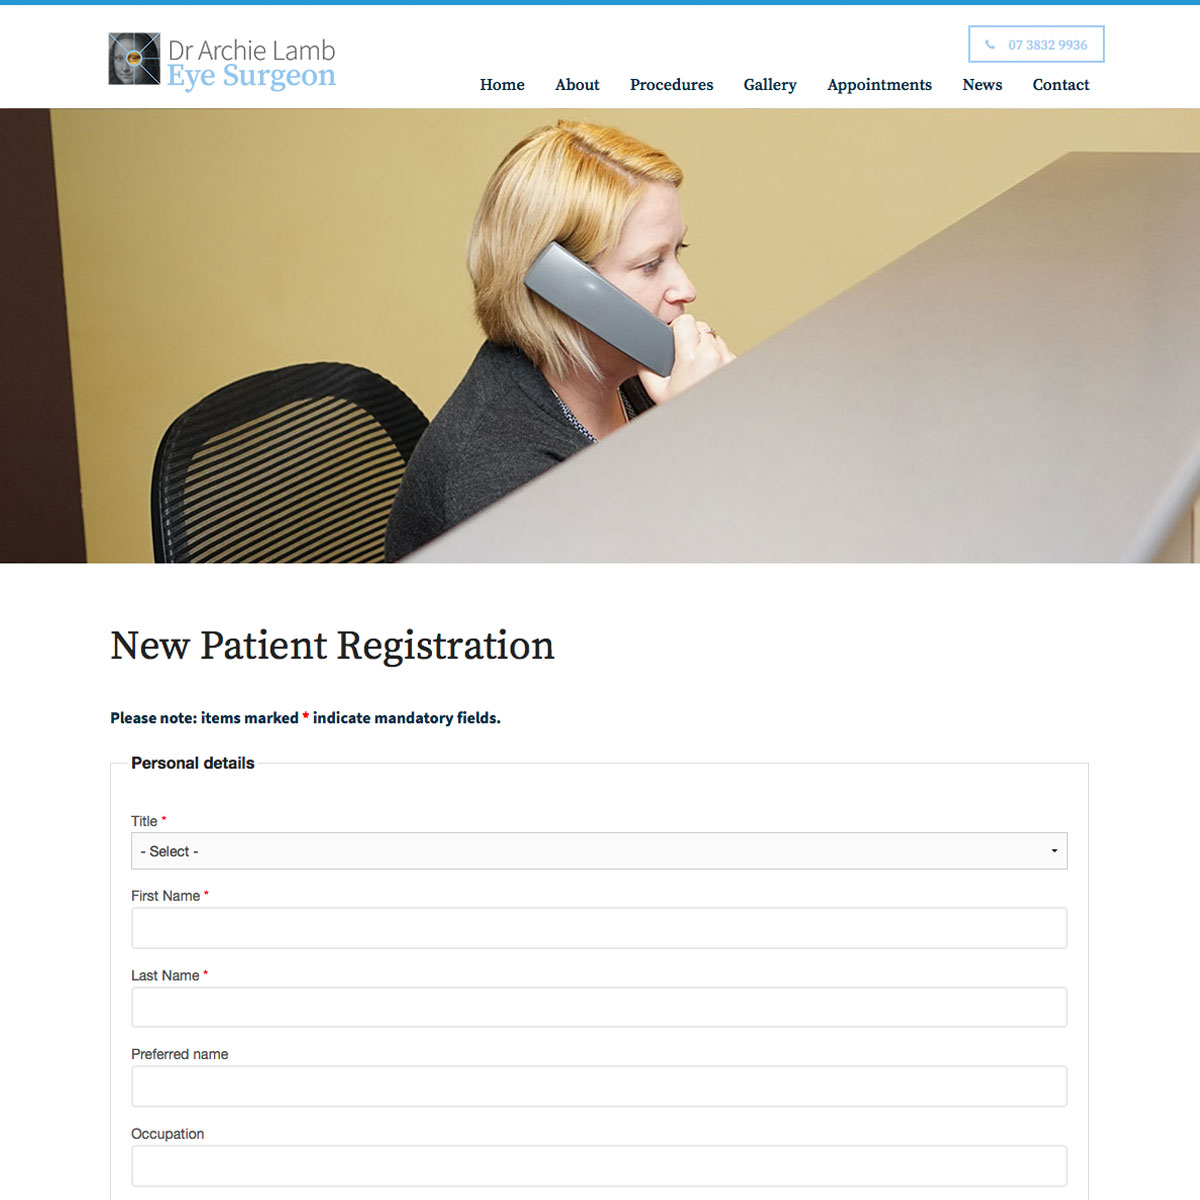 Dr Archie Lamb - Registration Form